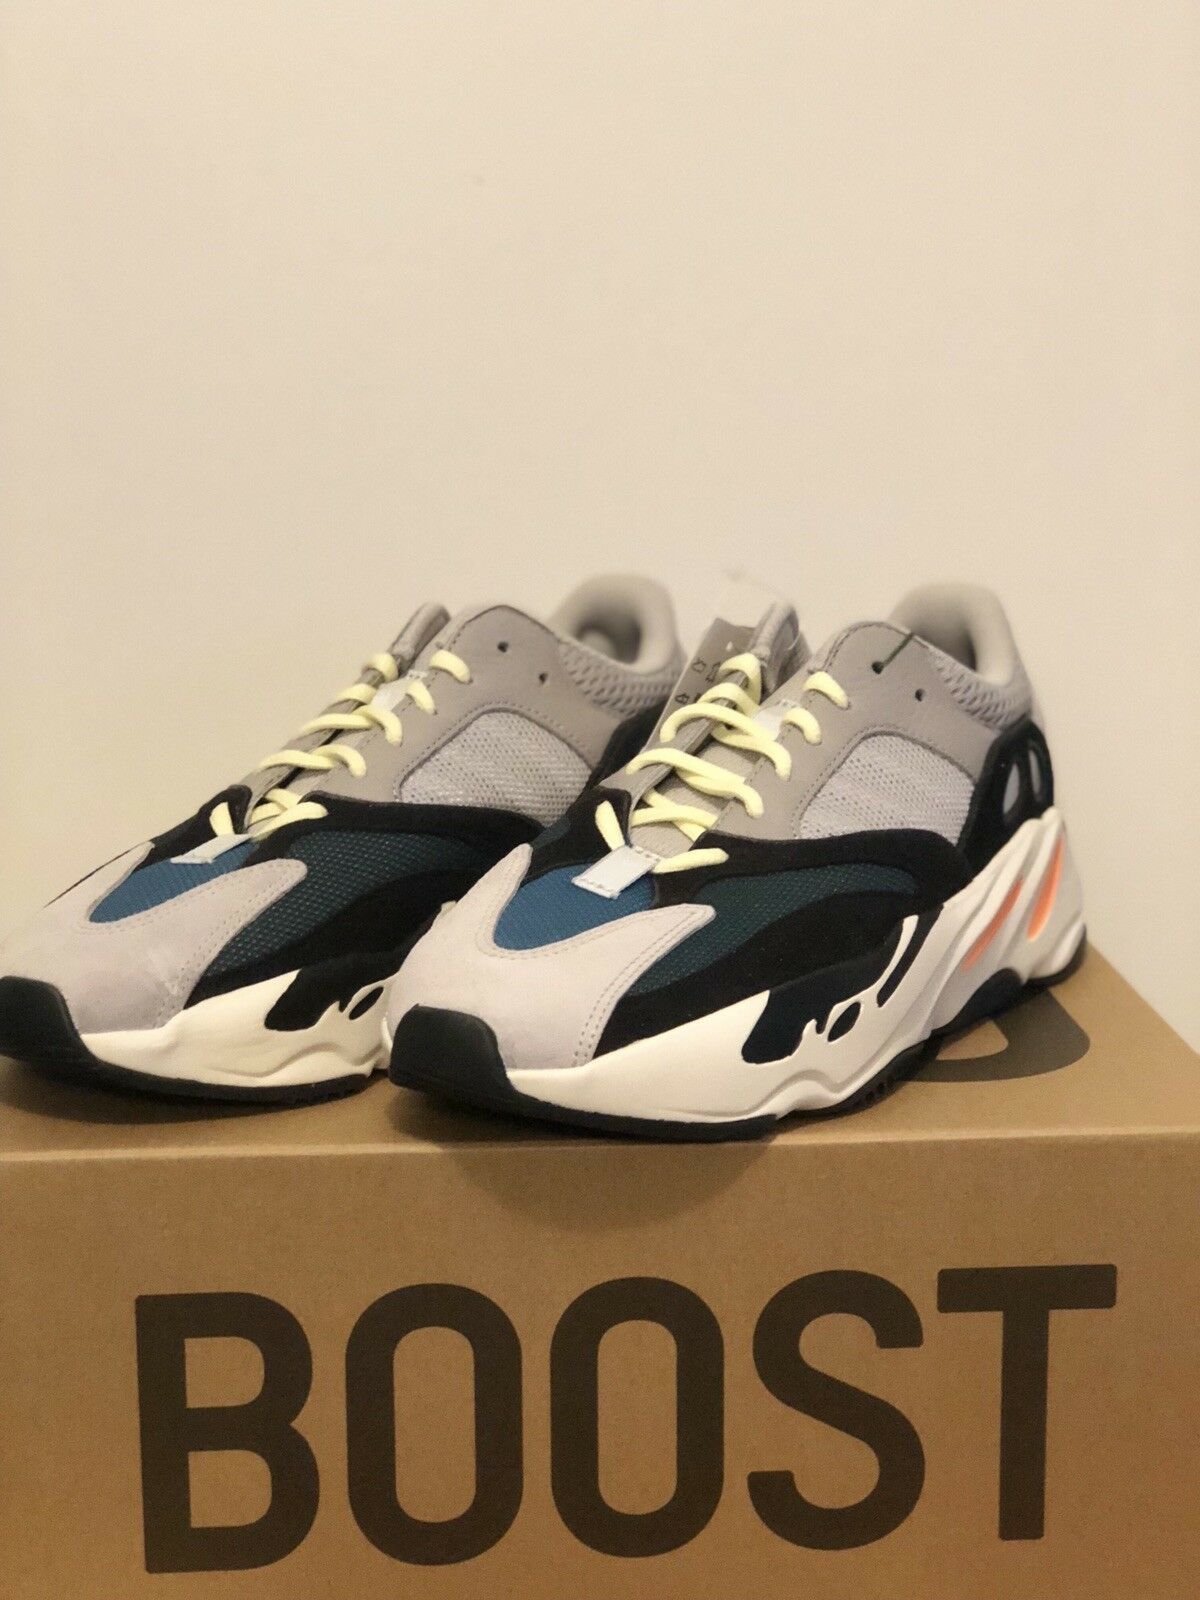 new style 752dd faee6 Adidas yeezy 700 wave runner size 9